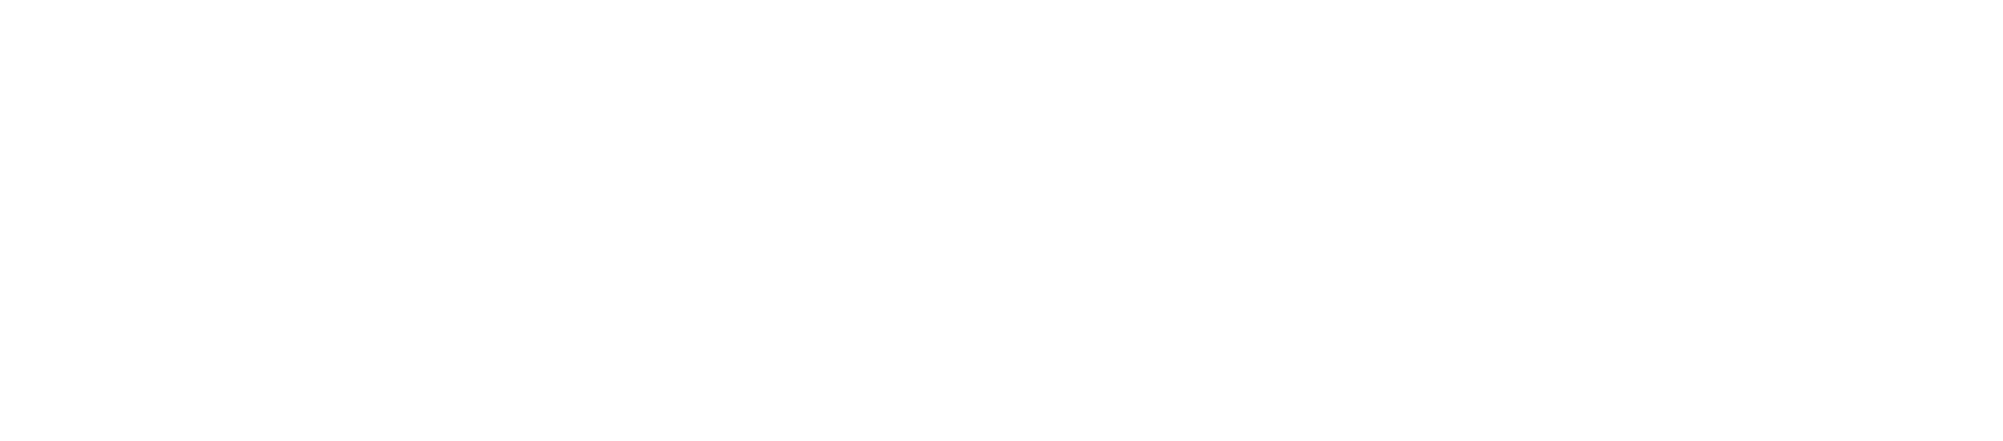 SmartCrowd | Real Estate Crowdfunding